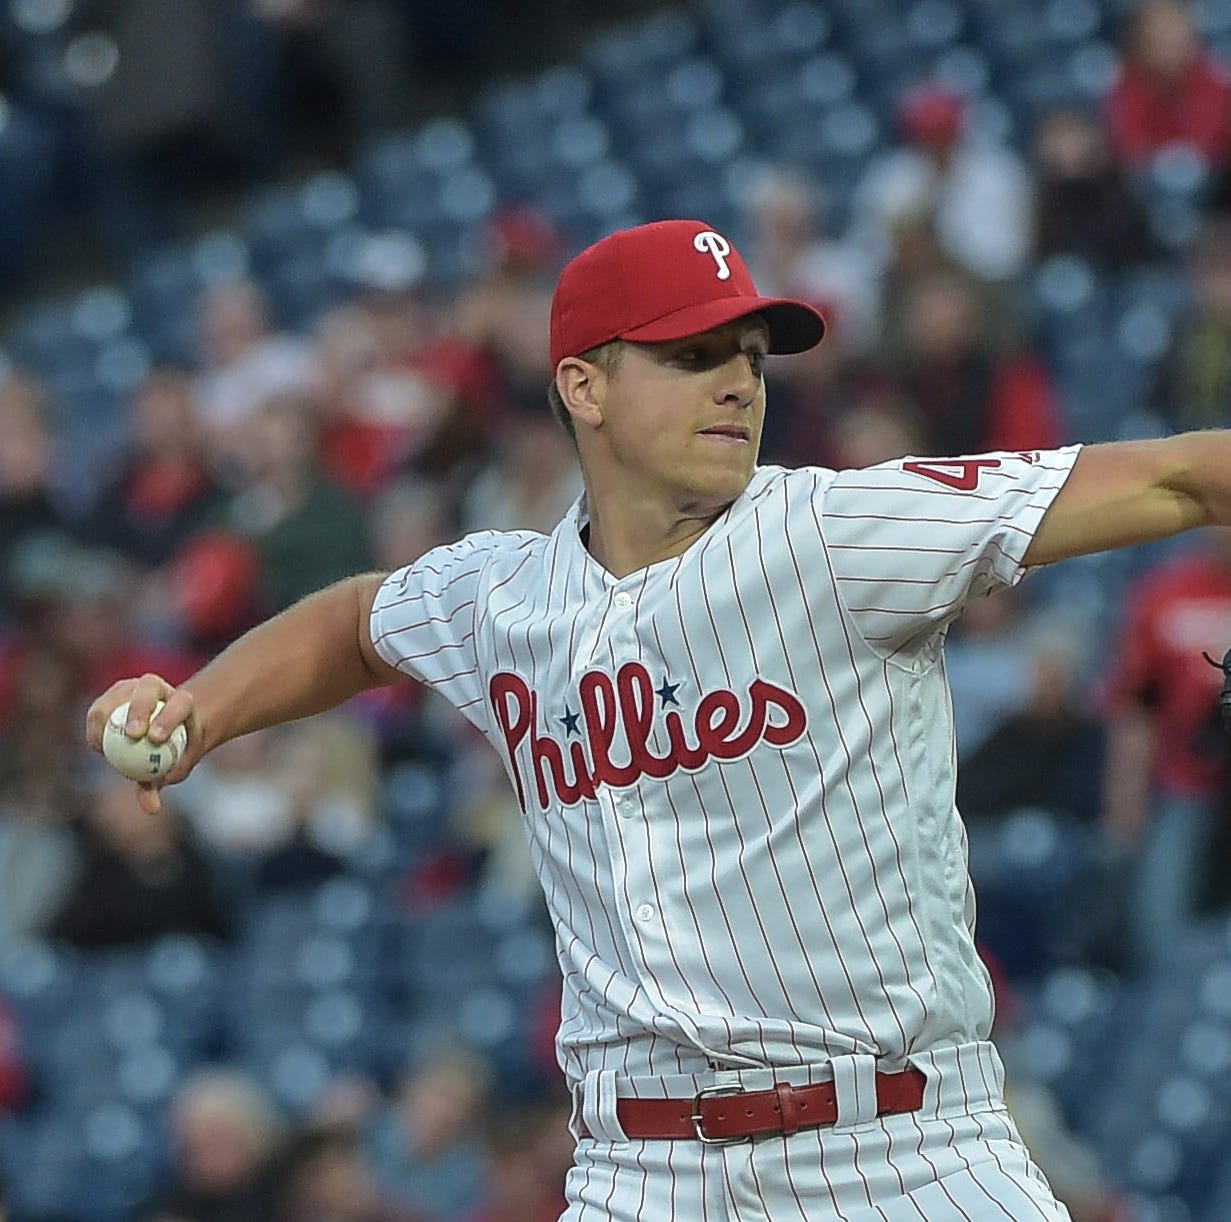 Phillies run out of patience with Pivetta, hit road after win over Mets